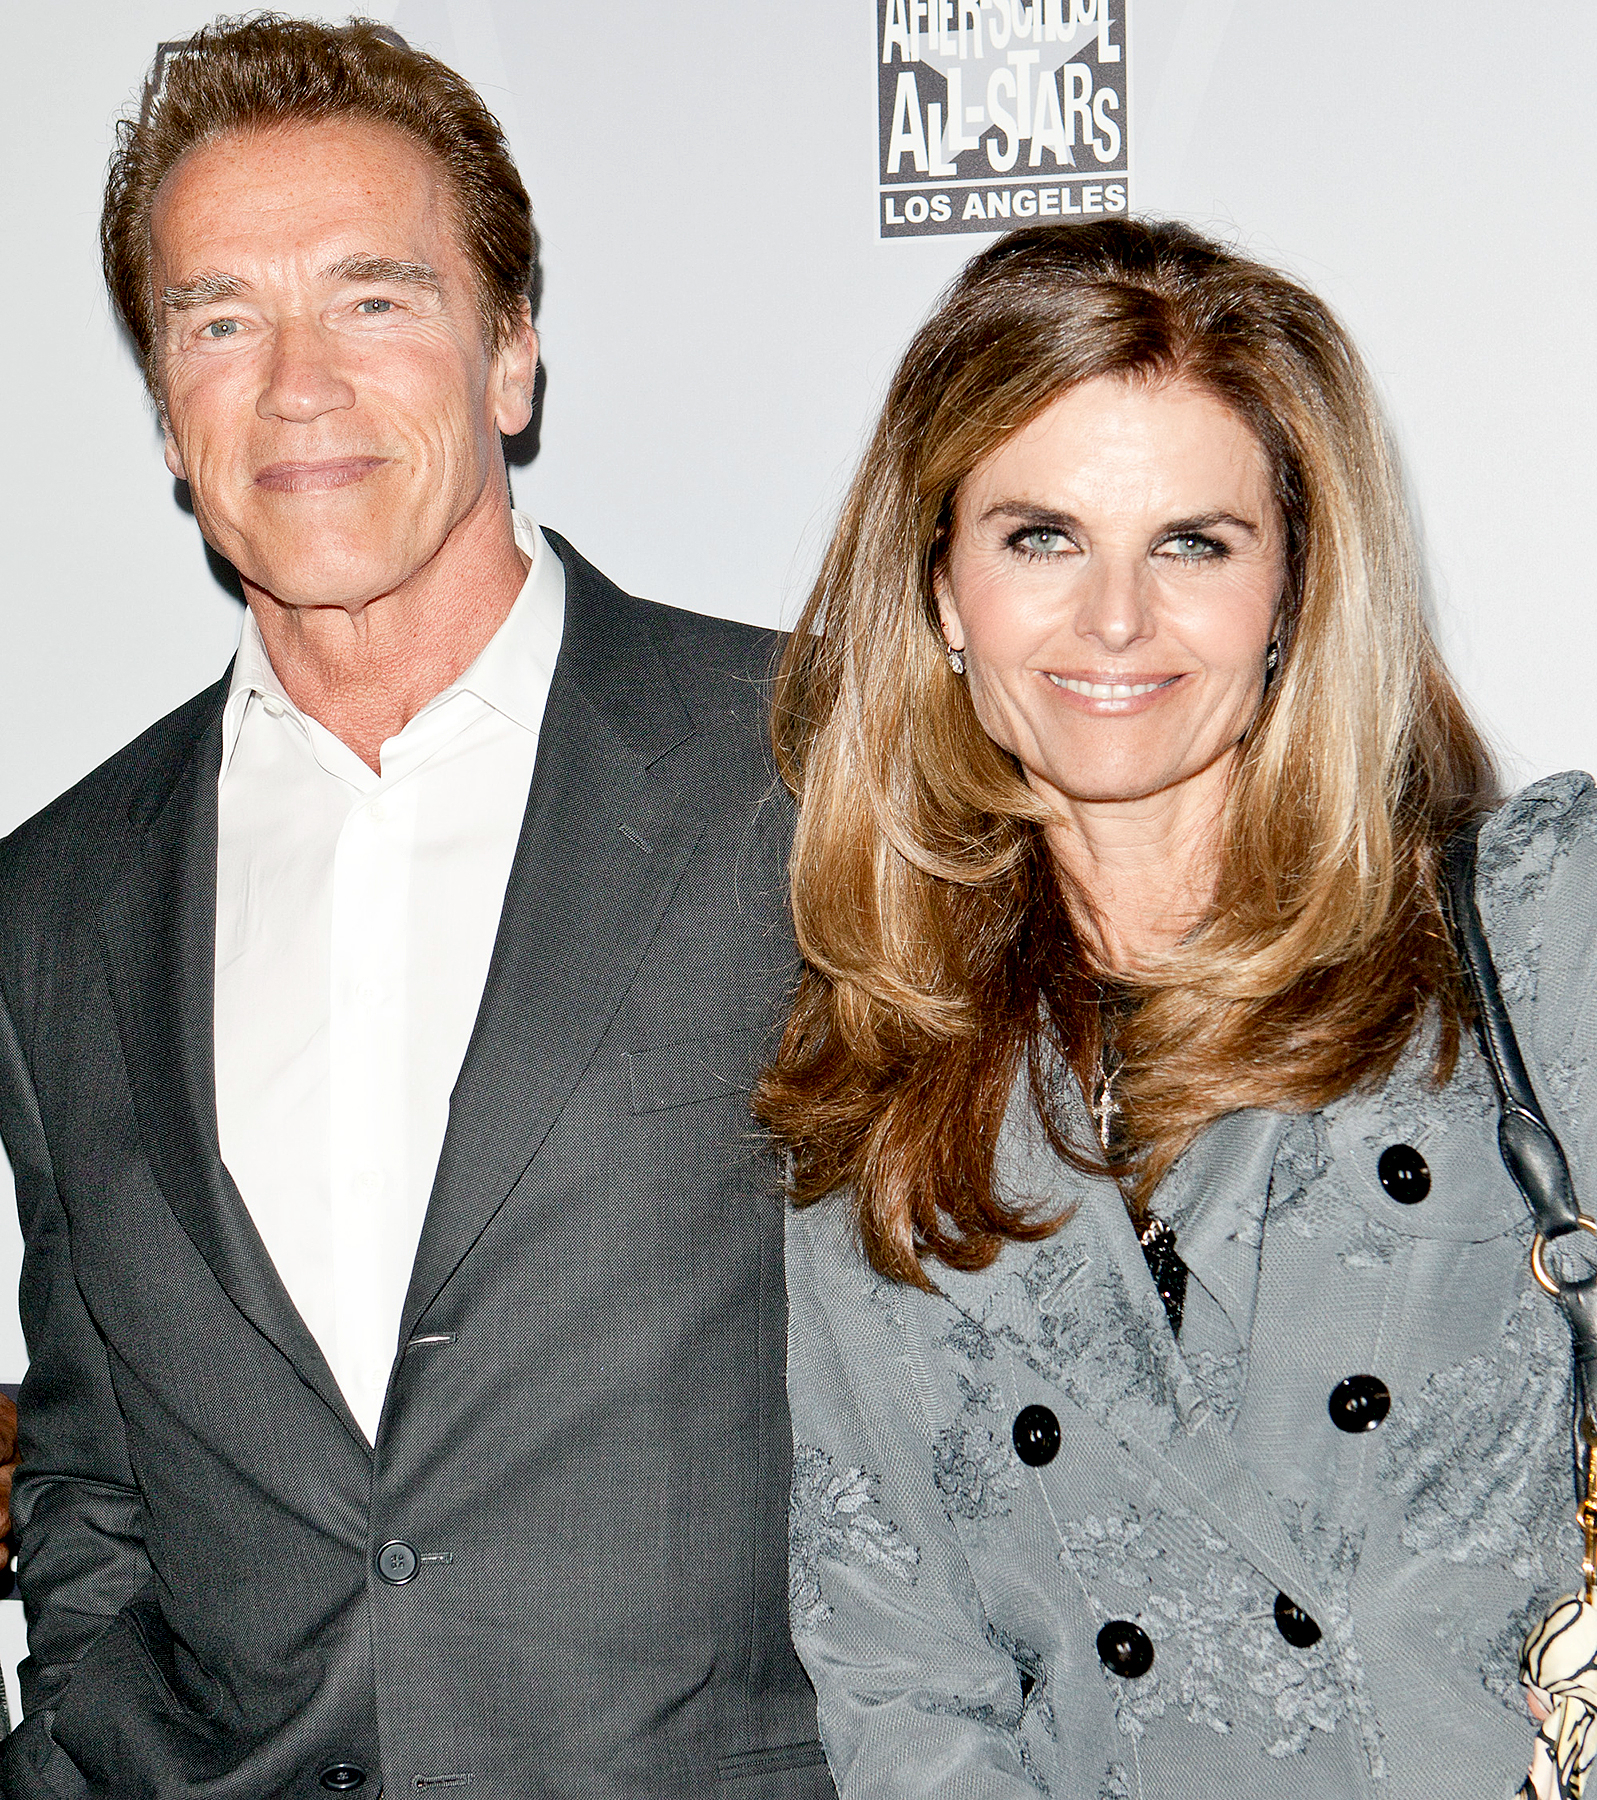 Arnold Schwarzenegger (L) and Maria Shriver (R) arrive at After-School All-Stars Hoop Heroes Salute launch party at Katsuya on February 18, 2011 in Los Angeles, California.